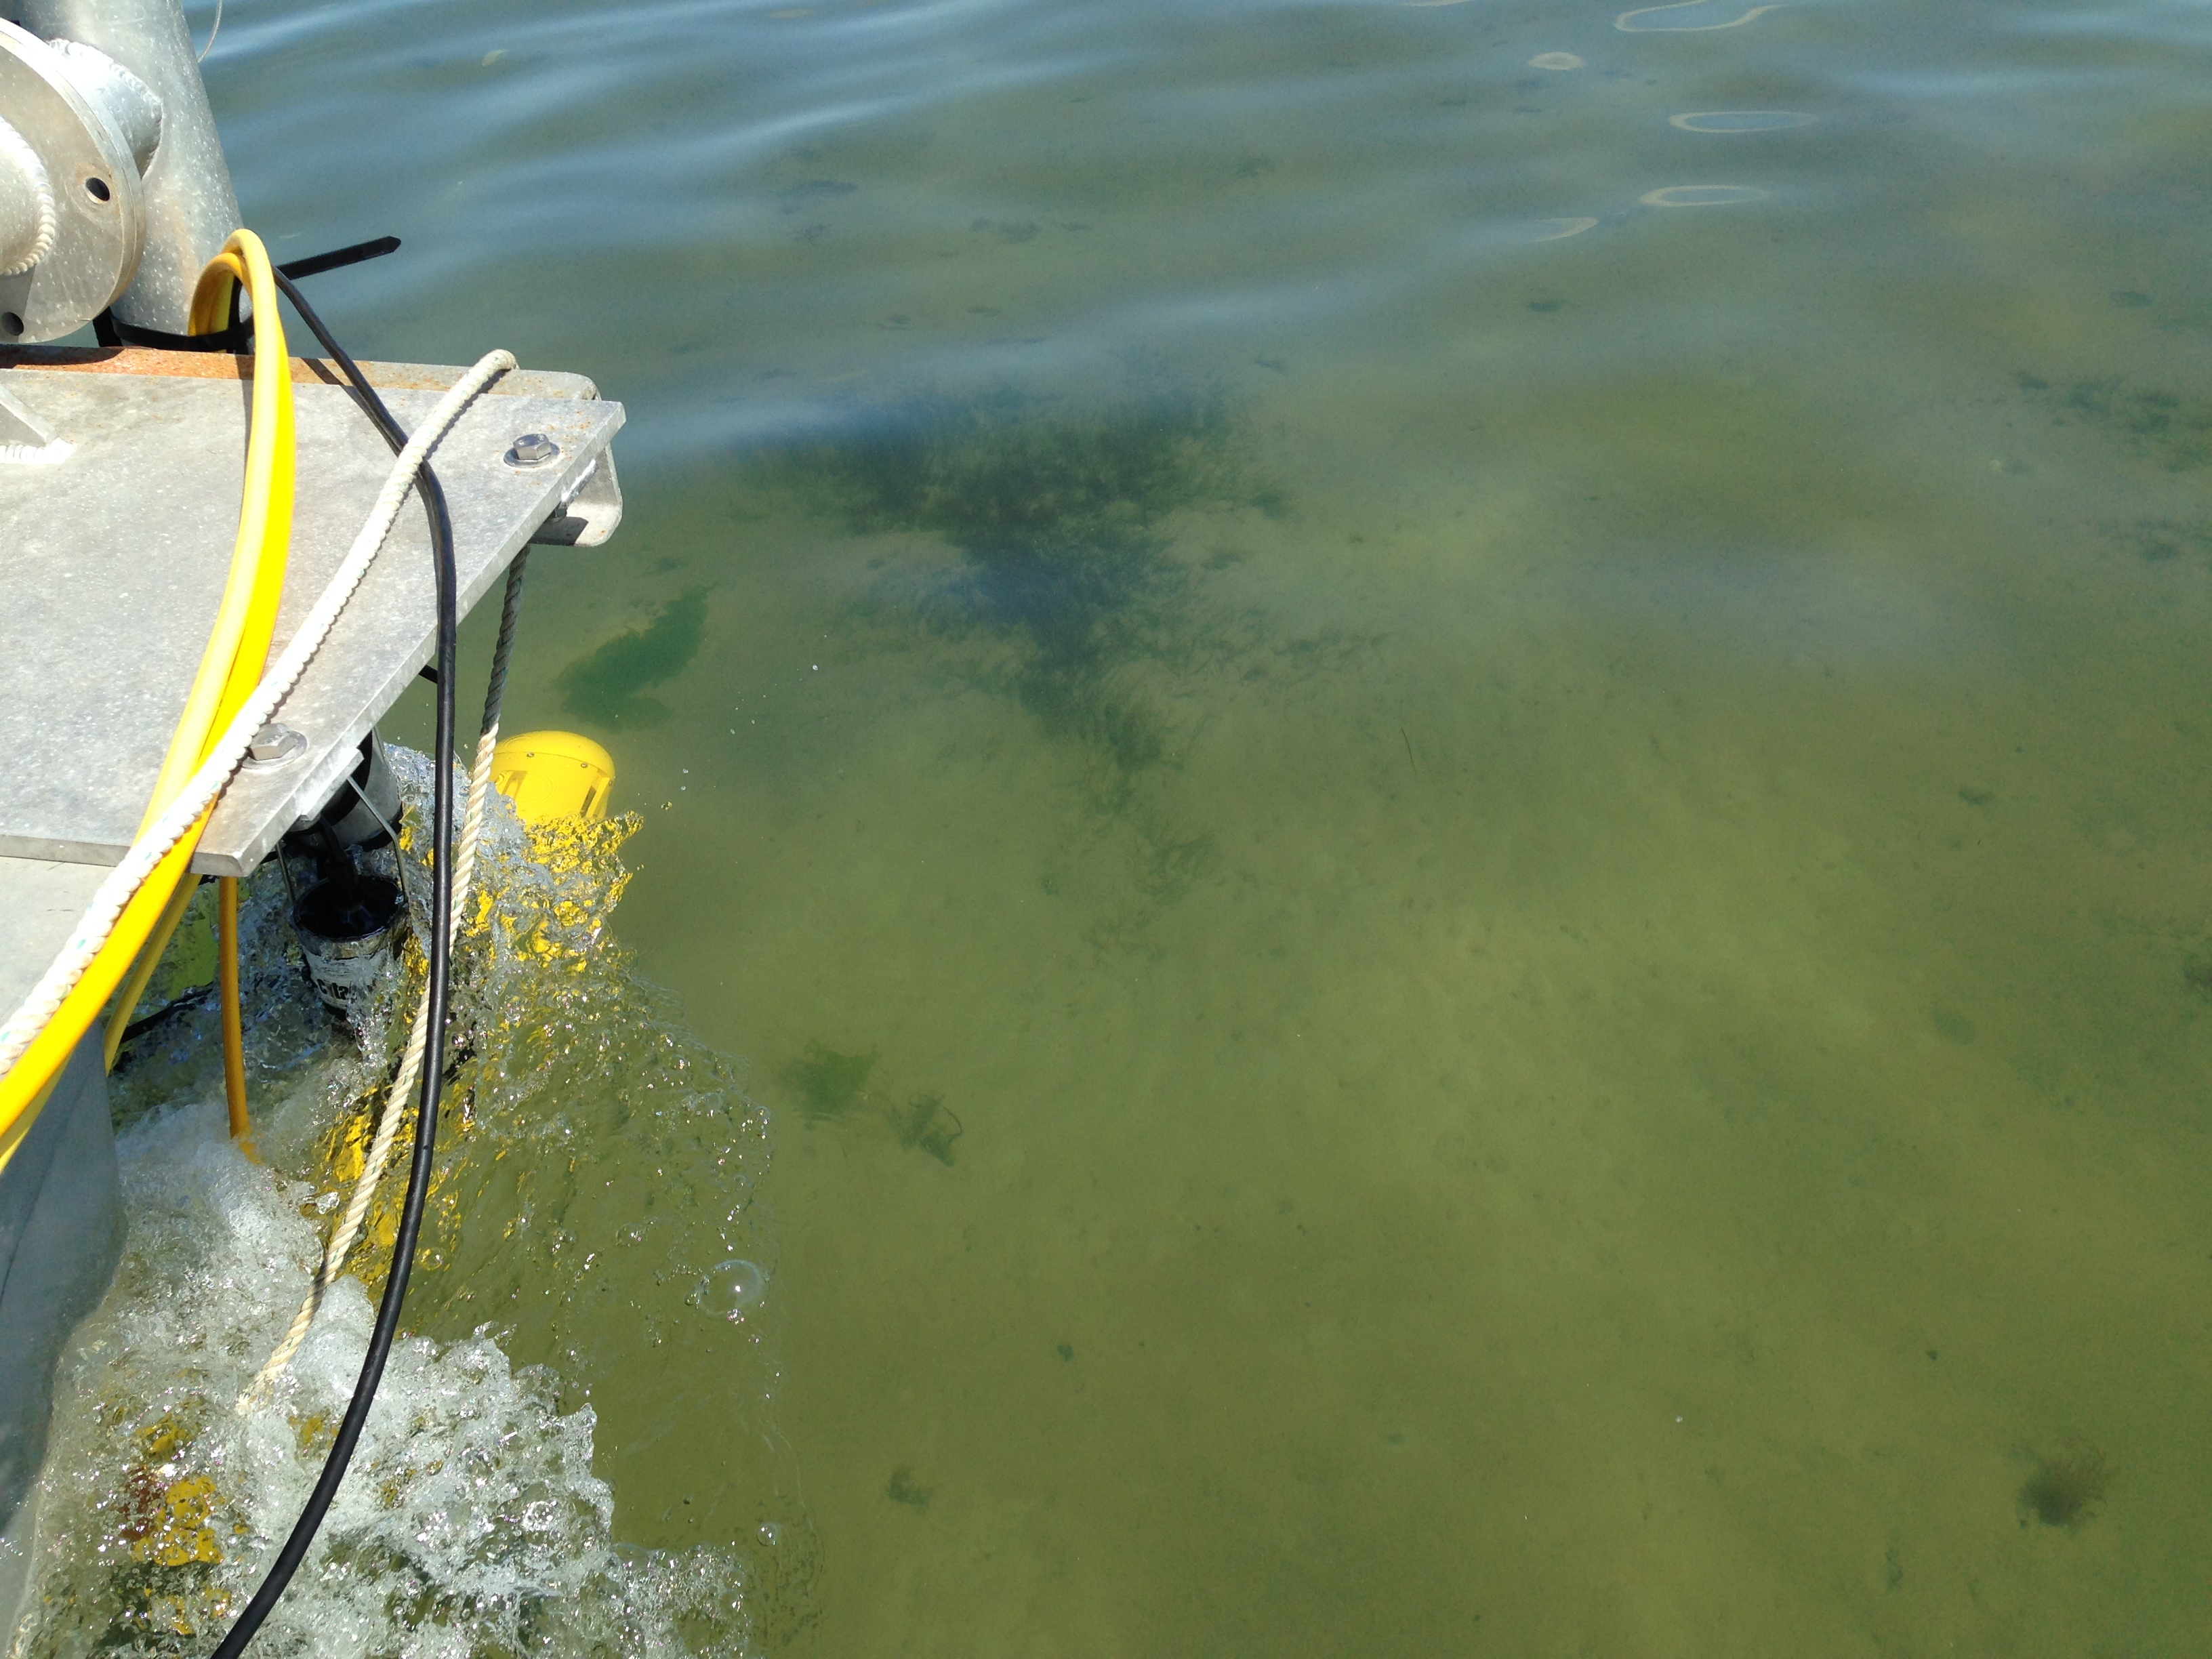 The sonar technology that Dr. King's team uses for submerged habitat mapping is called interferometric side-scan sonar. The sonar device releases sound pulses, which bounce back and deliver data that shows the contours of the seafloor.